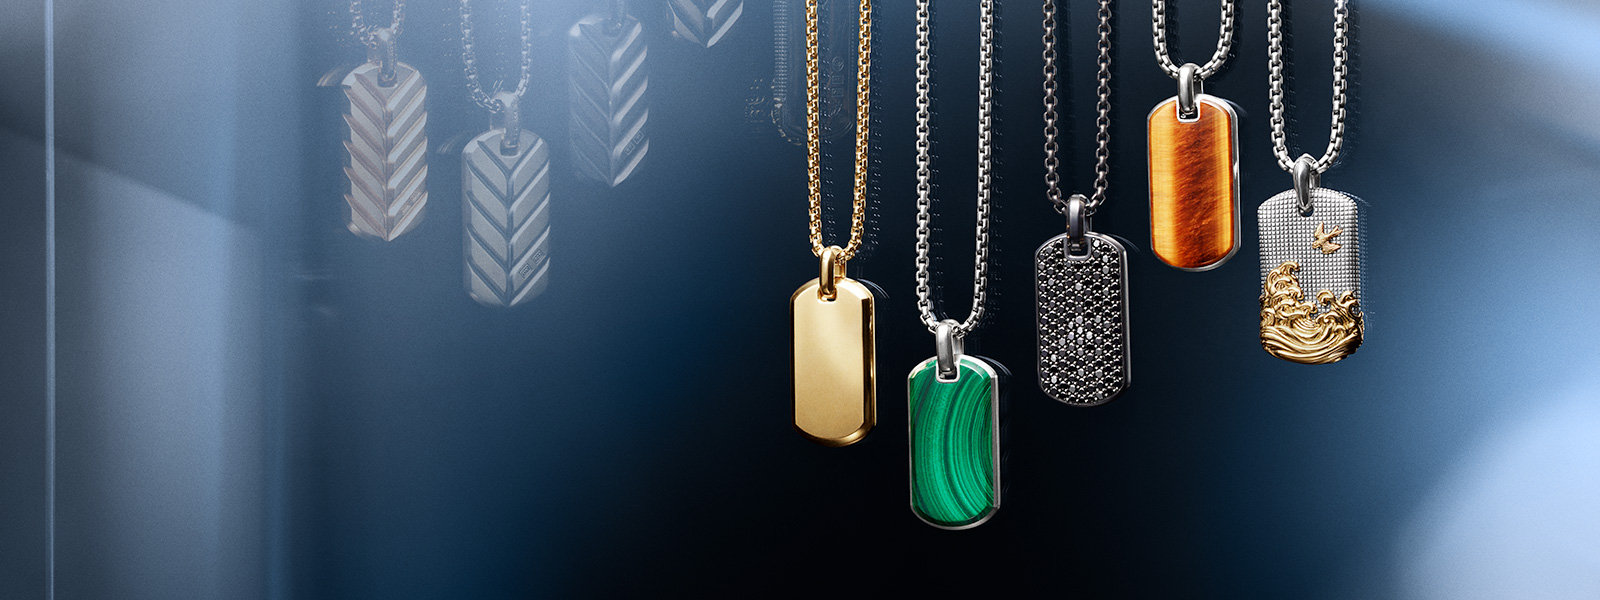 A color photograph shows a horizontal row of five David Yurman men's tags from the Streamline®, Exotic Stone, Pavé and Waves collections strung on box-chain necklaces and hanging in front of a reflective surface with angular, multi-colored reflections of light and jewelry. The Streamline® tag is crafted from 18K yellow gold and is strung on an 18K yellow gold chain. The Exotic Stone tags are crafted from sterling silver with inlaid malachite or tiger's eye, and are strung on sterling silver chains. The Pavé tag is crafted from black titanium with pavé black diamonds and is strung on a black titanium chain. The Waves tag is crafted from sterling silver with 18K yellow gold and is strung on a sterling silver chain.